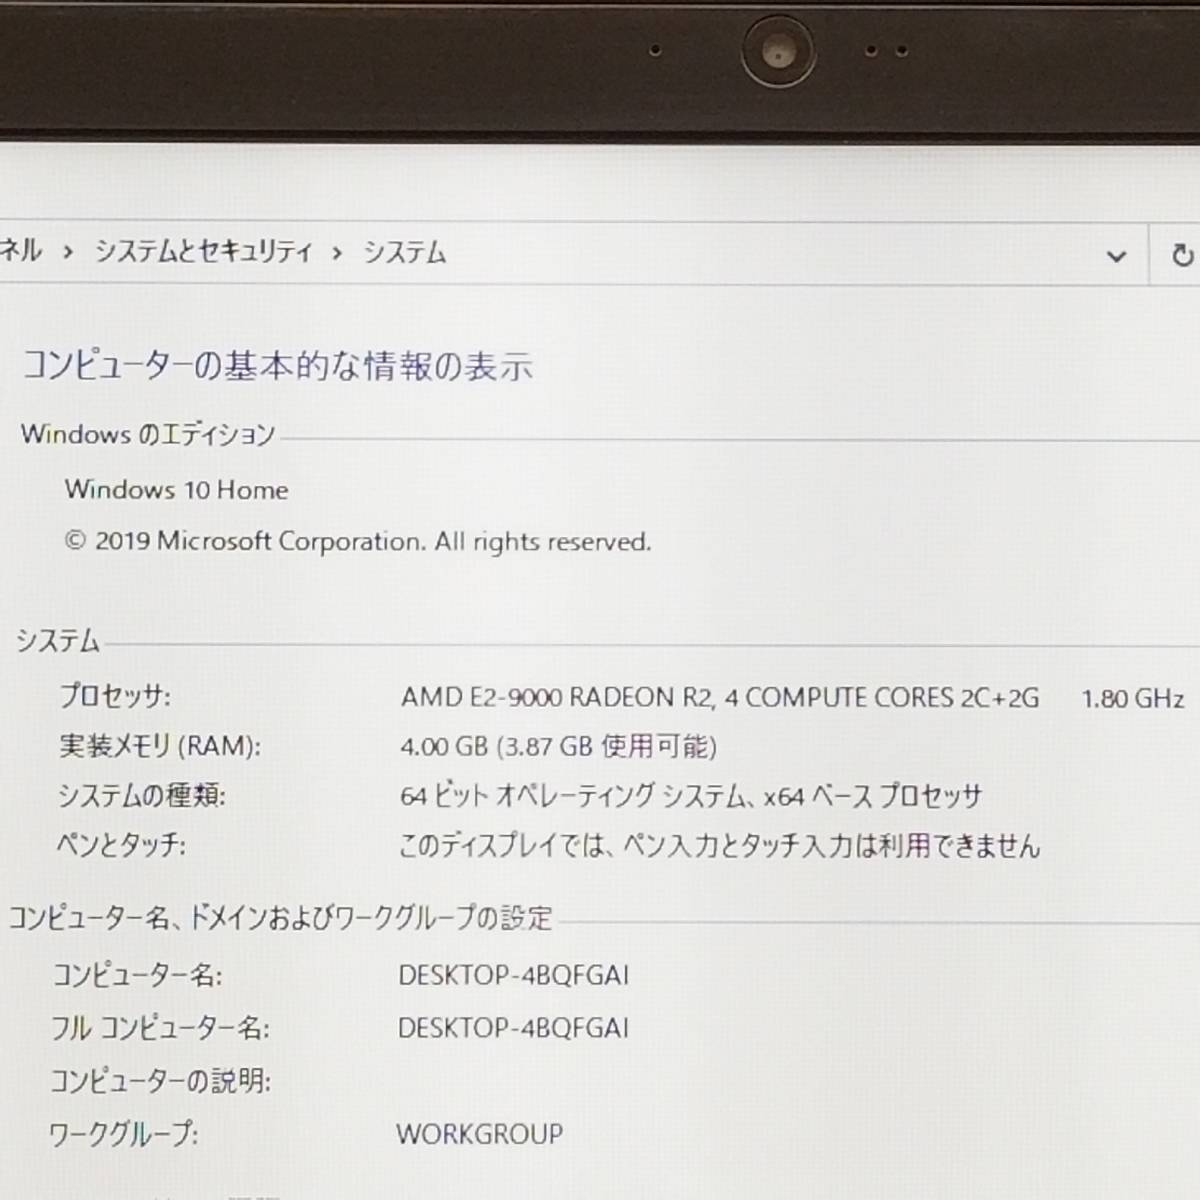 ★Windows10 Home 搭載★